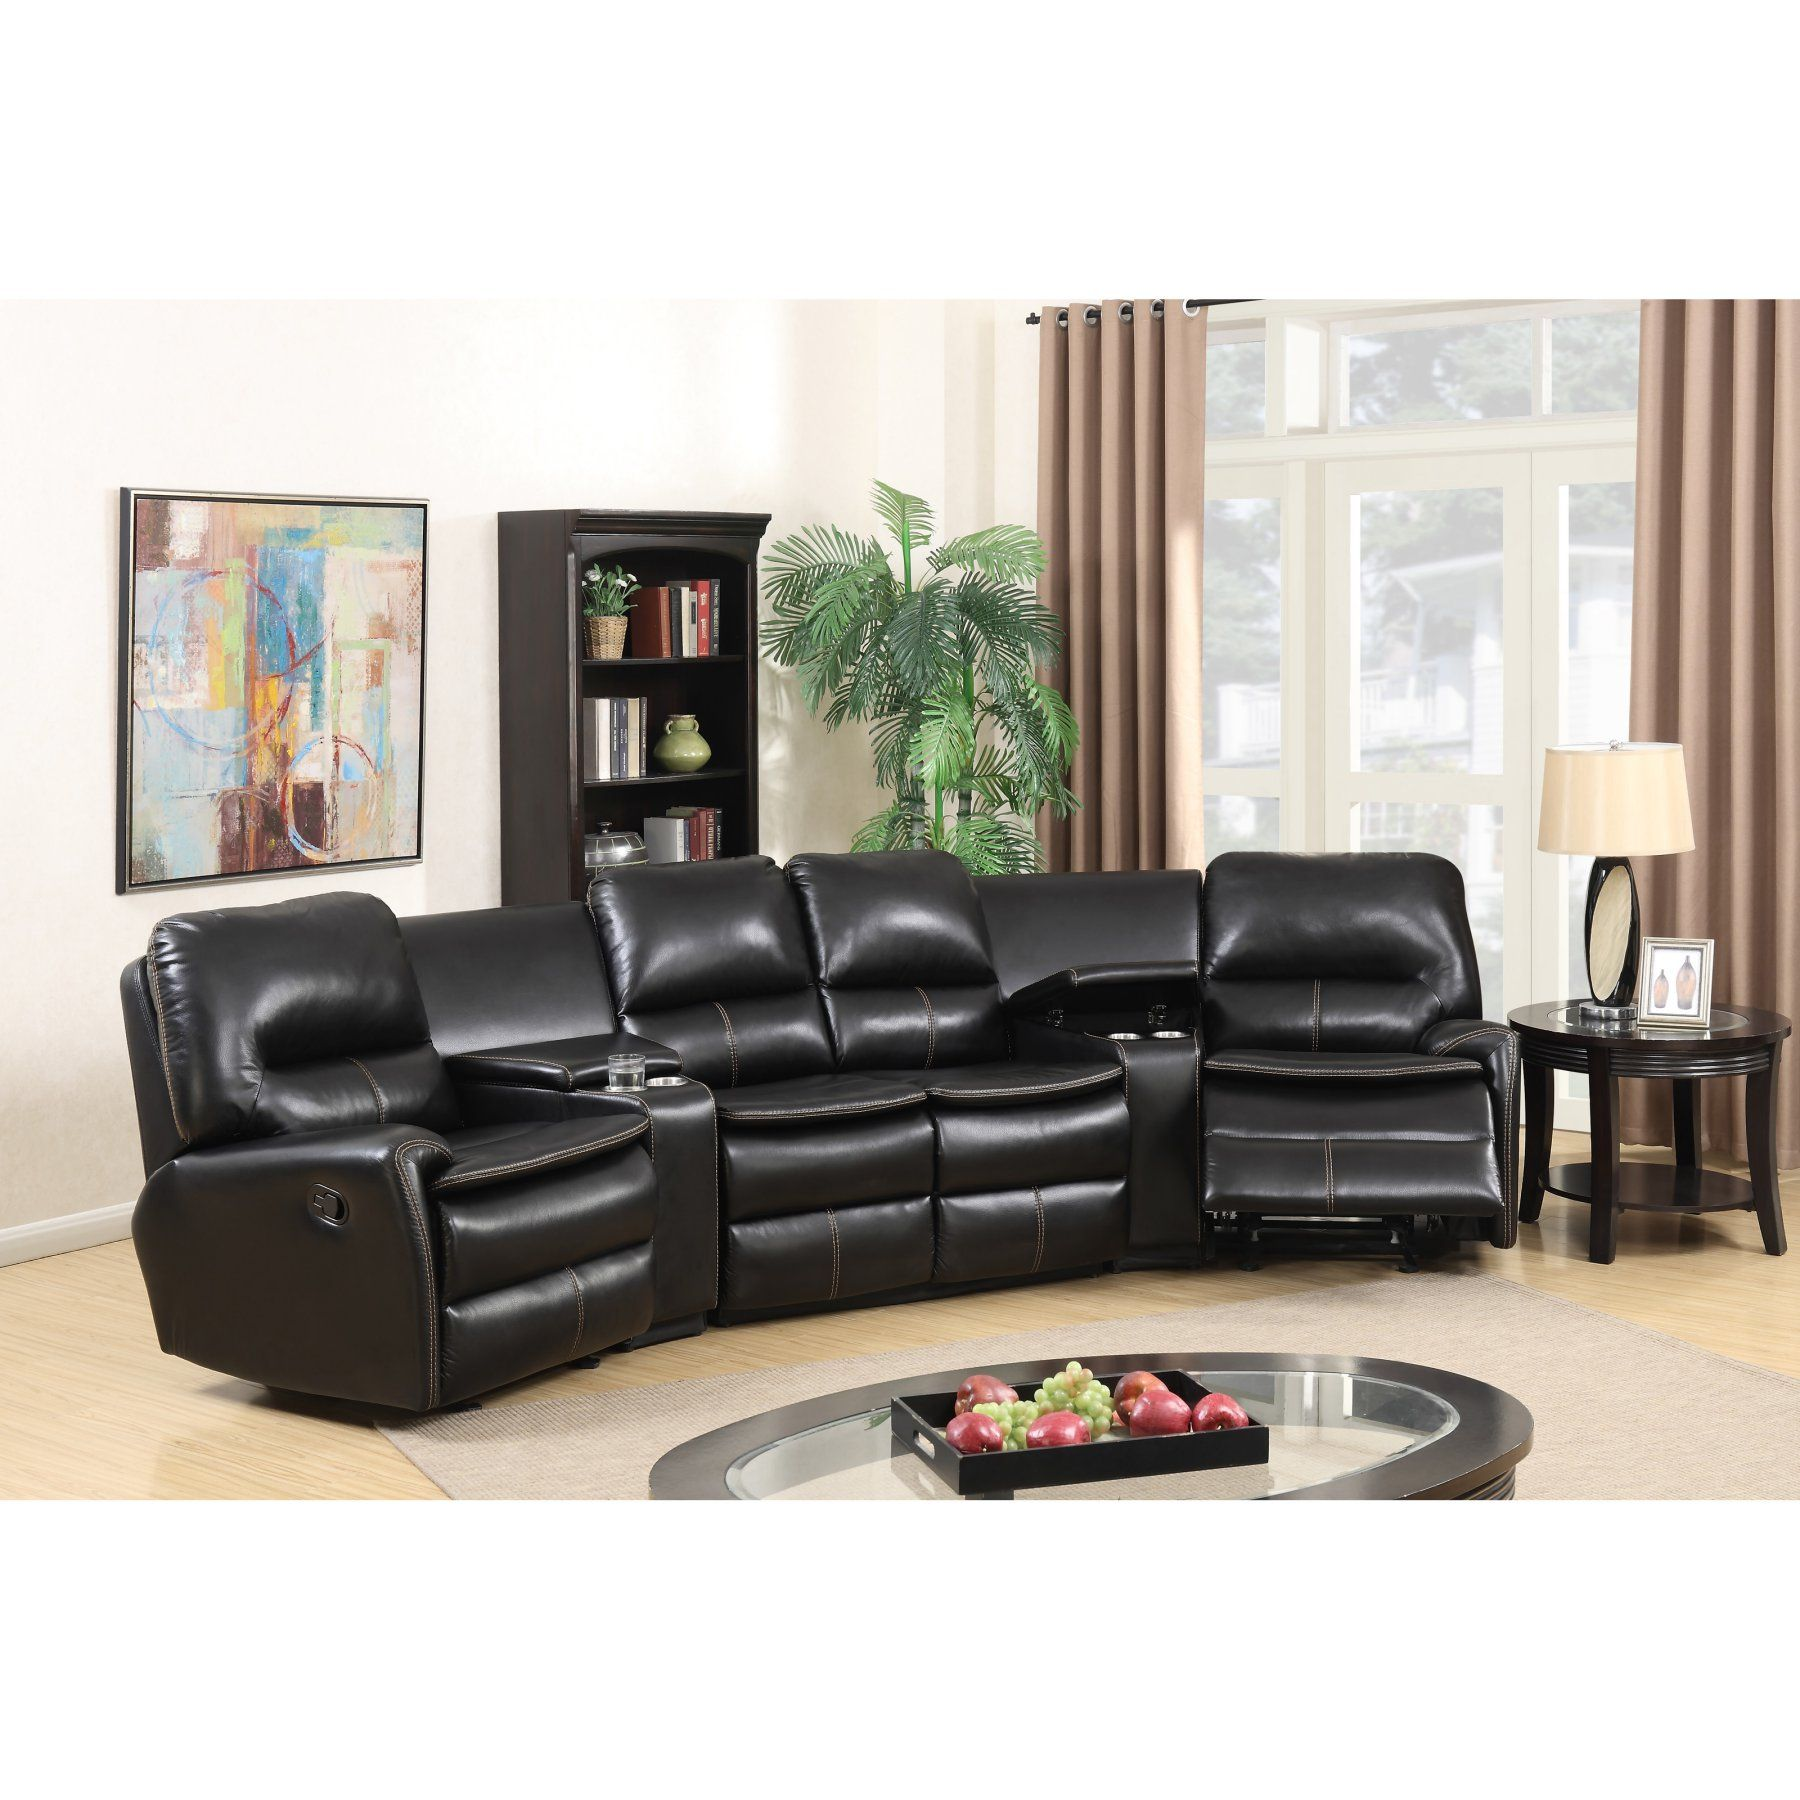 Fabulous Best Master Furniture Saratoga Springs 5 Piece Sectional Pabps2019 Chair Design Images Pabps2019Com